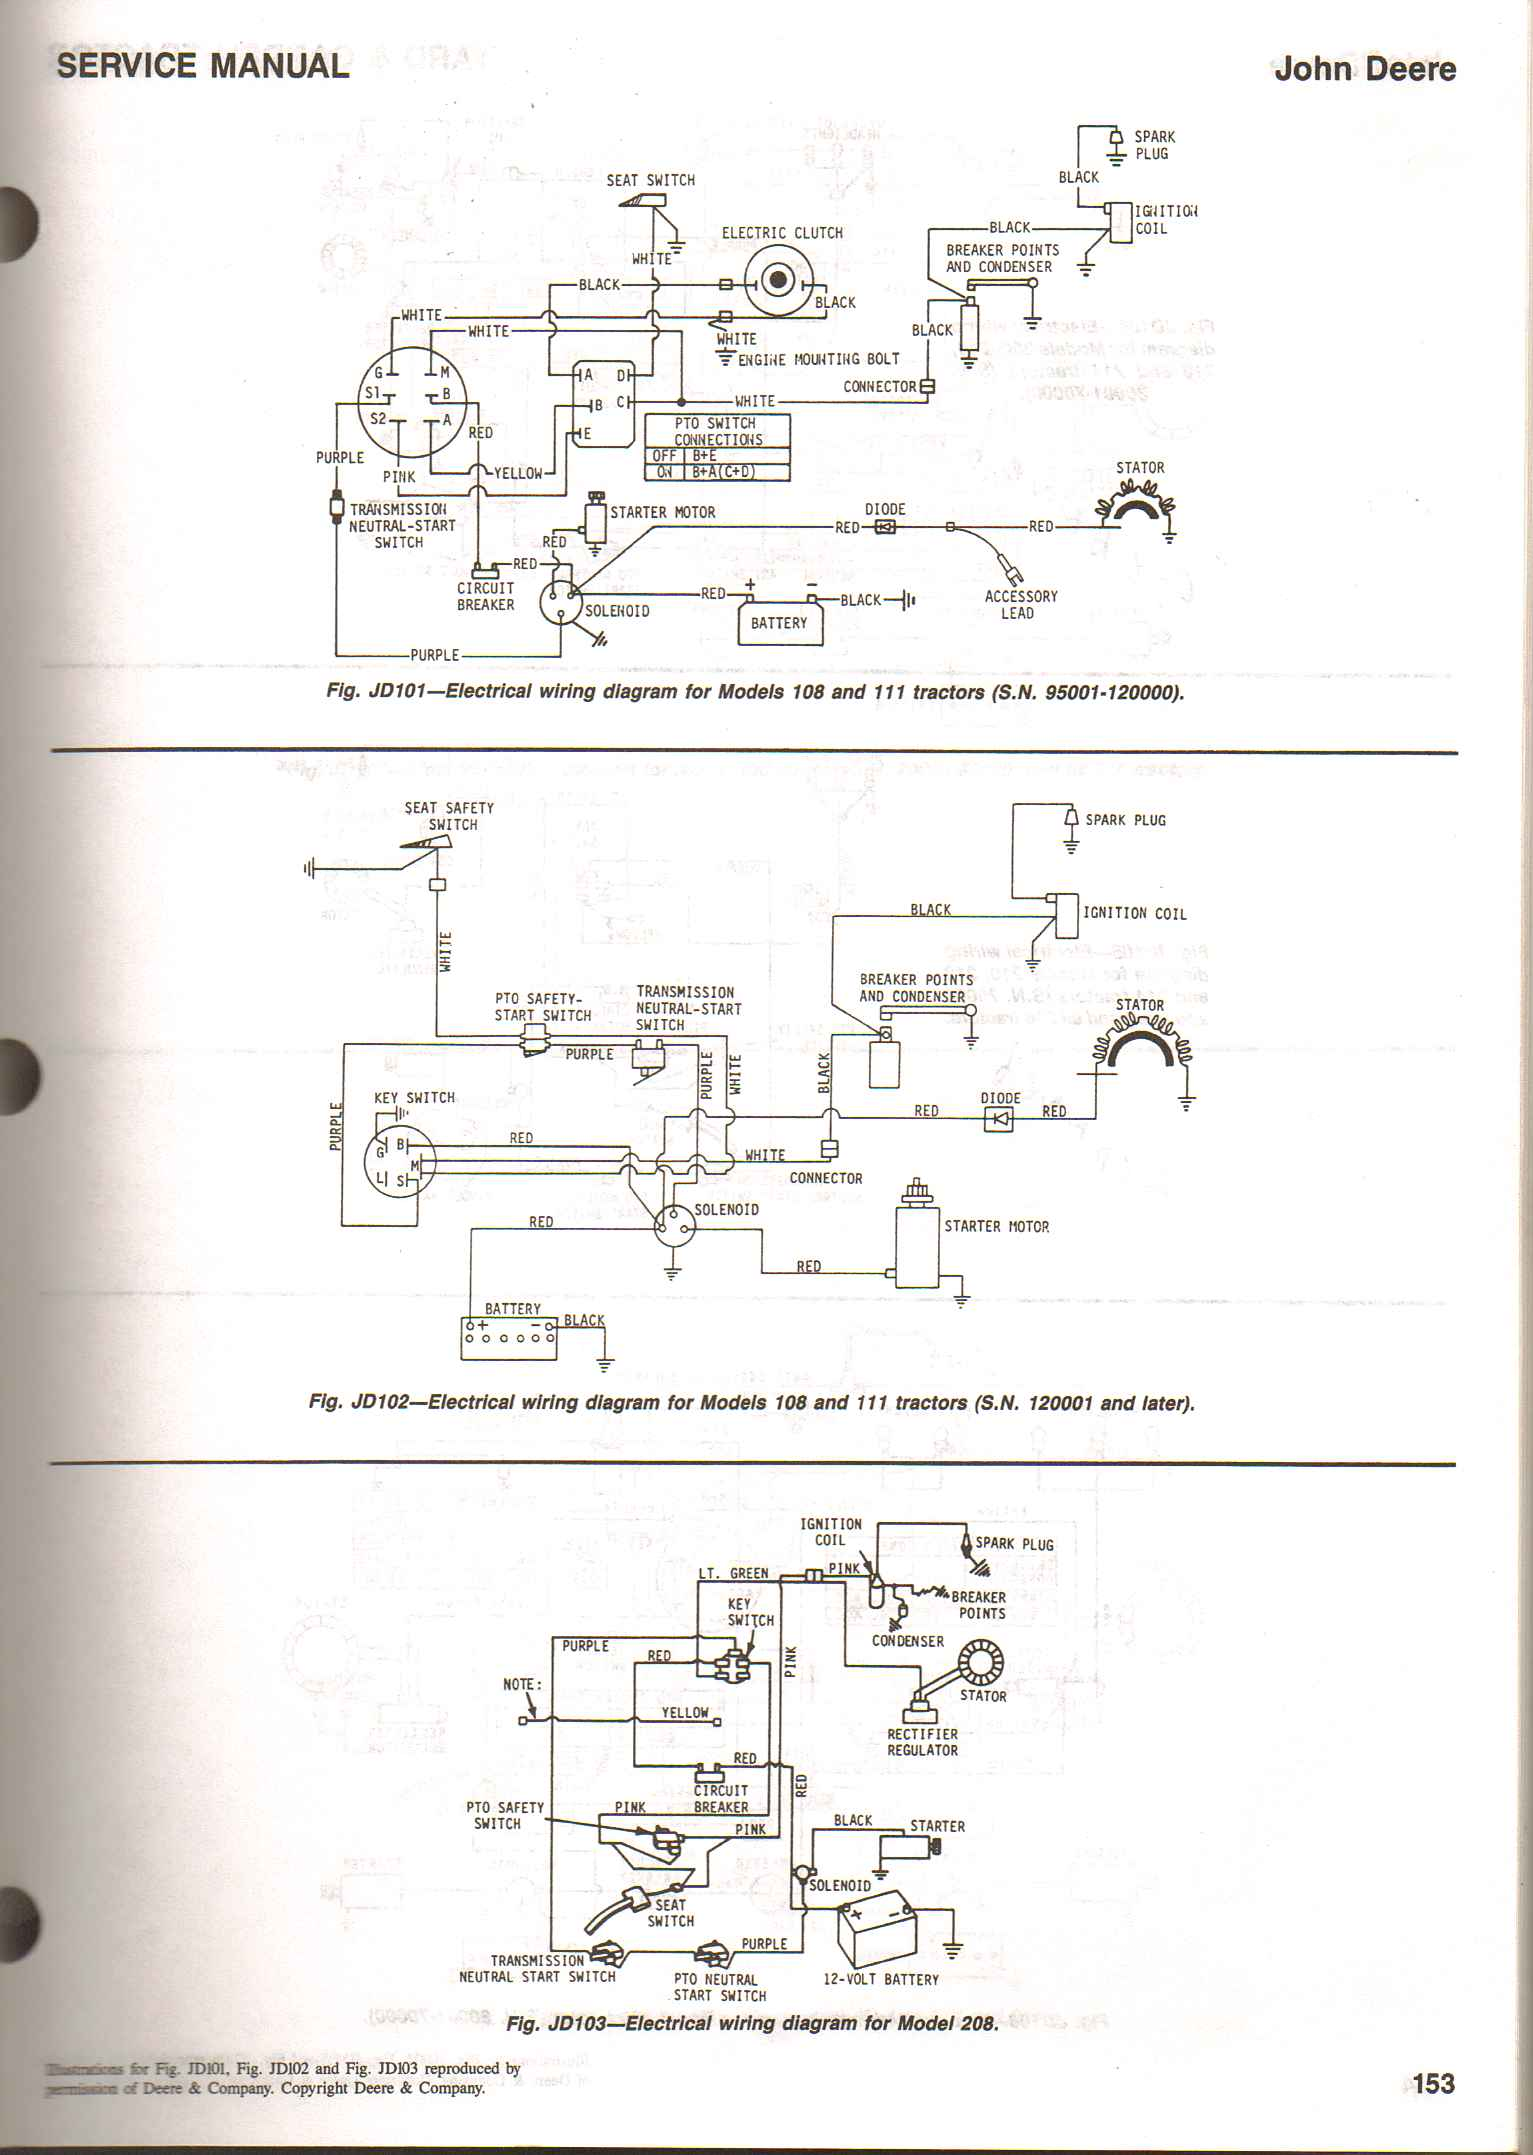 John Deere 108 Wiring Diagram Third Level Car Electrical System I Need To Rewire The Ignition On My Lawn Tractor But